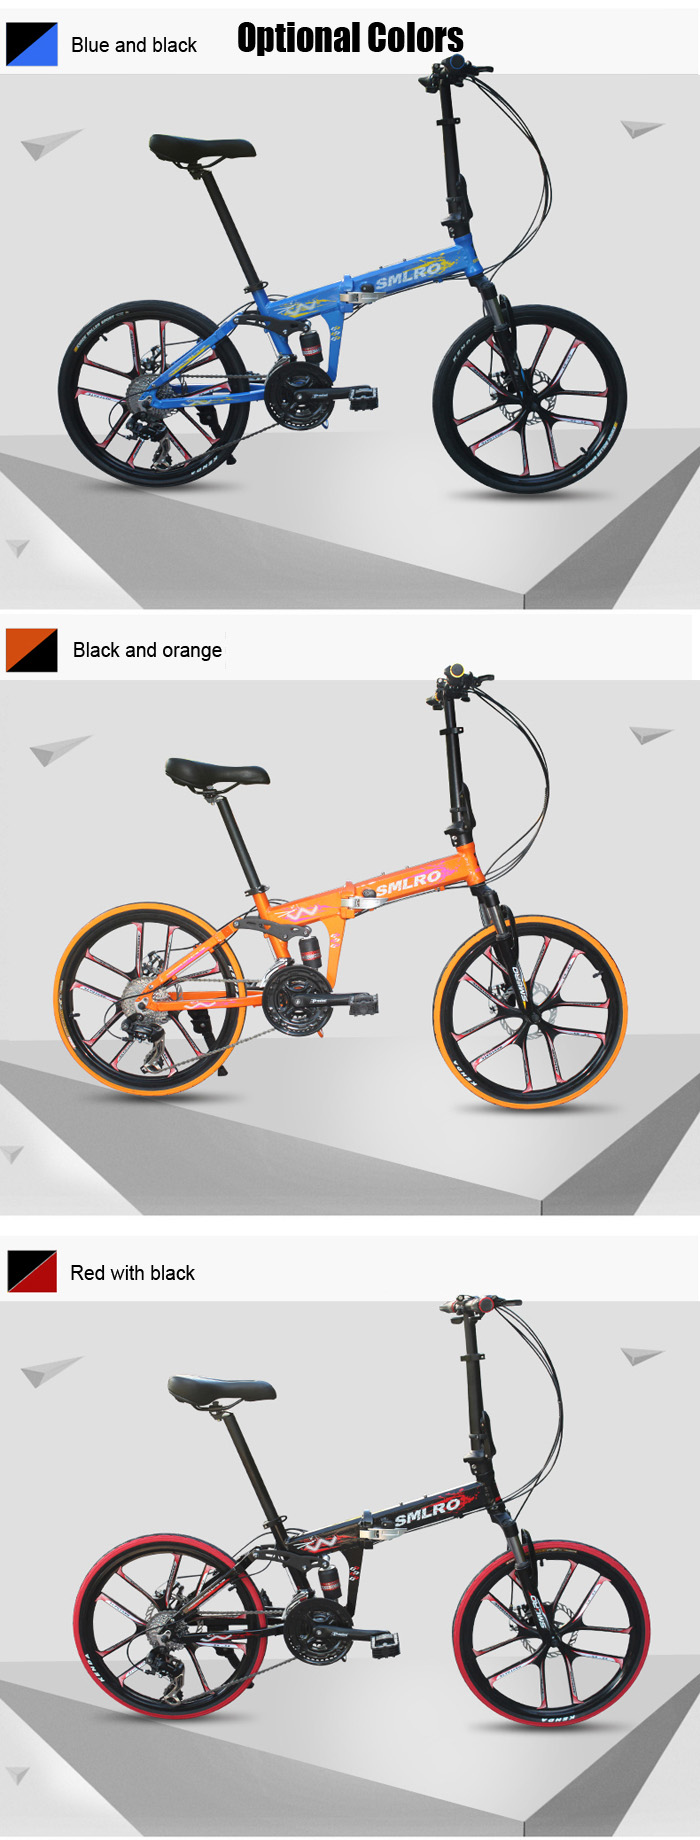 SMLRO MX690 20 inch Folding Mountain Bike 24 Speed 10-spoke Integral Wheel Aluminum Alloy Frame Double Disc Brakes Cycling Bicycle